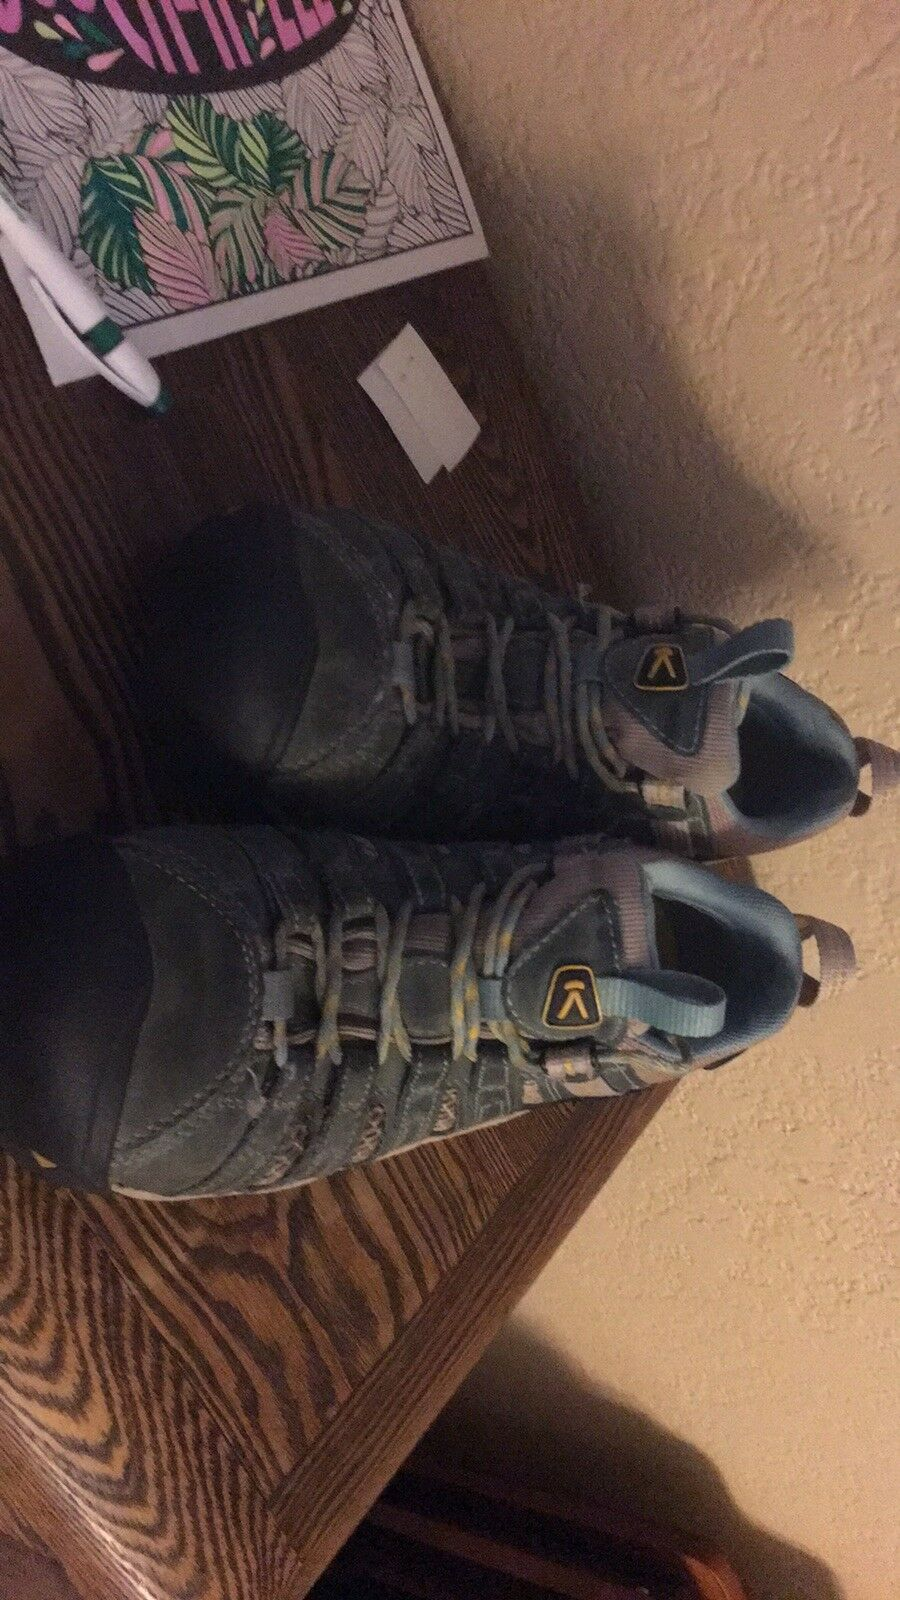 Keen donna Flint  Low Steel Toe Waterprova Comfort Safety Work stivali Dimensione 8.5  varie dimensioni